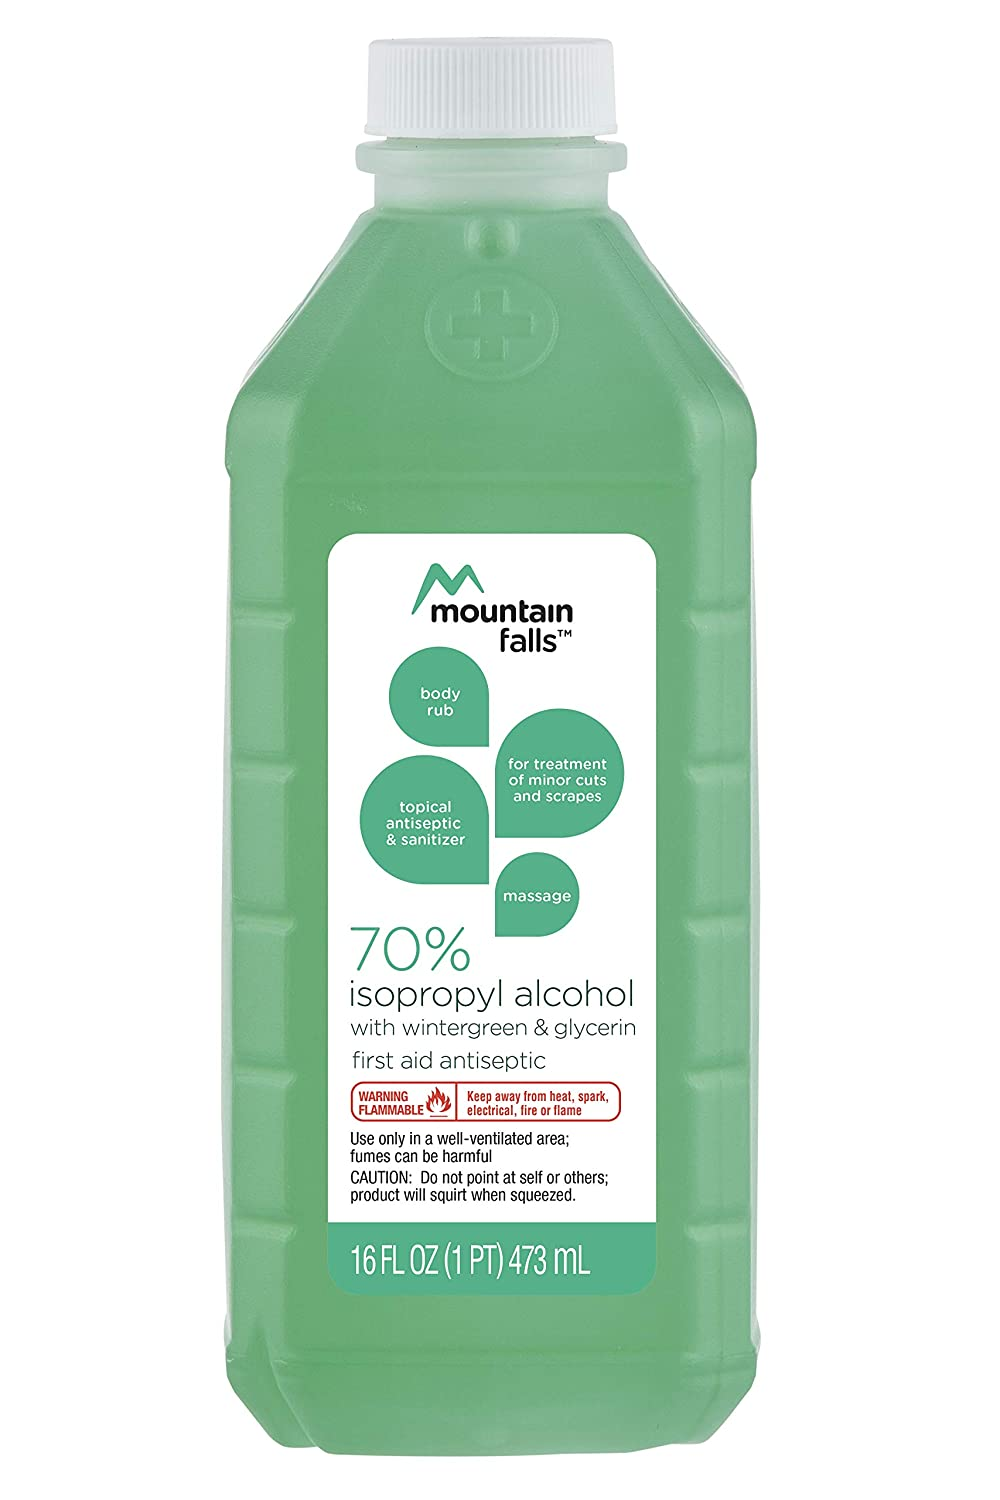 Mountain Falls 70% Isopropyl Alcohol First Aid Antiseptic for Treatment of  Minor Cuts and Scrapes, with